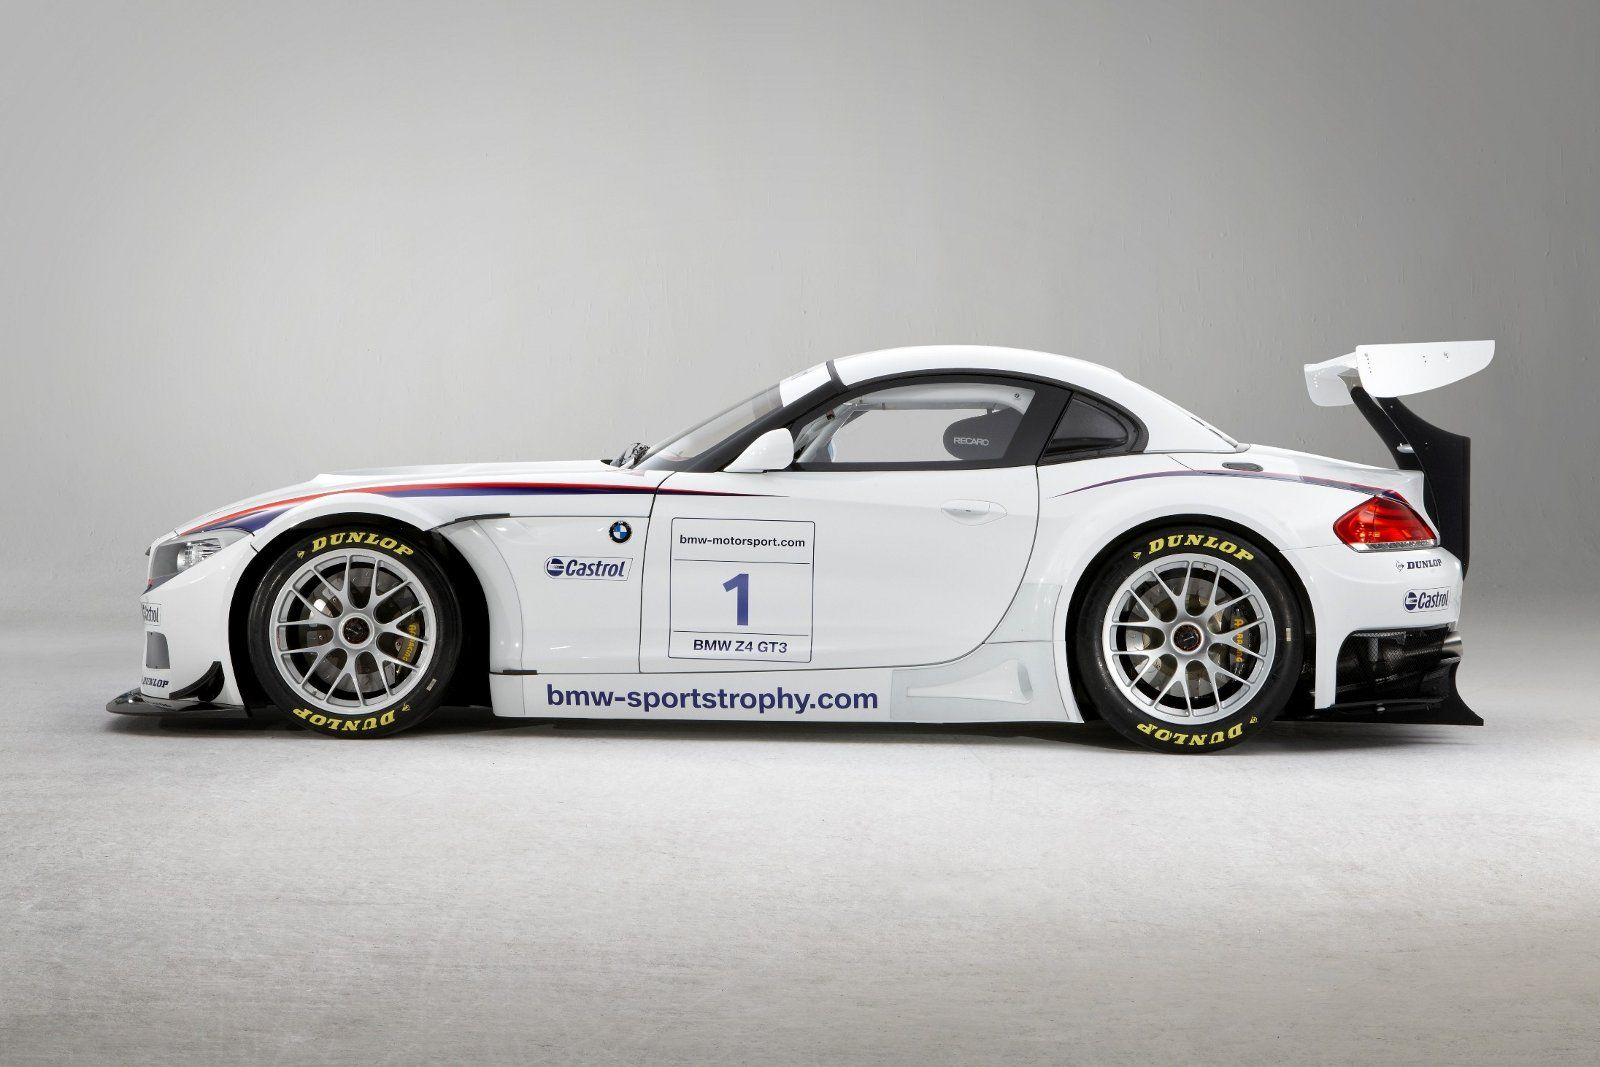 Bmw Z4 Gt3 Photo Gallery Autoblog